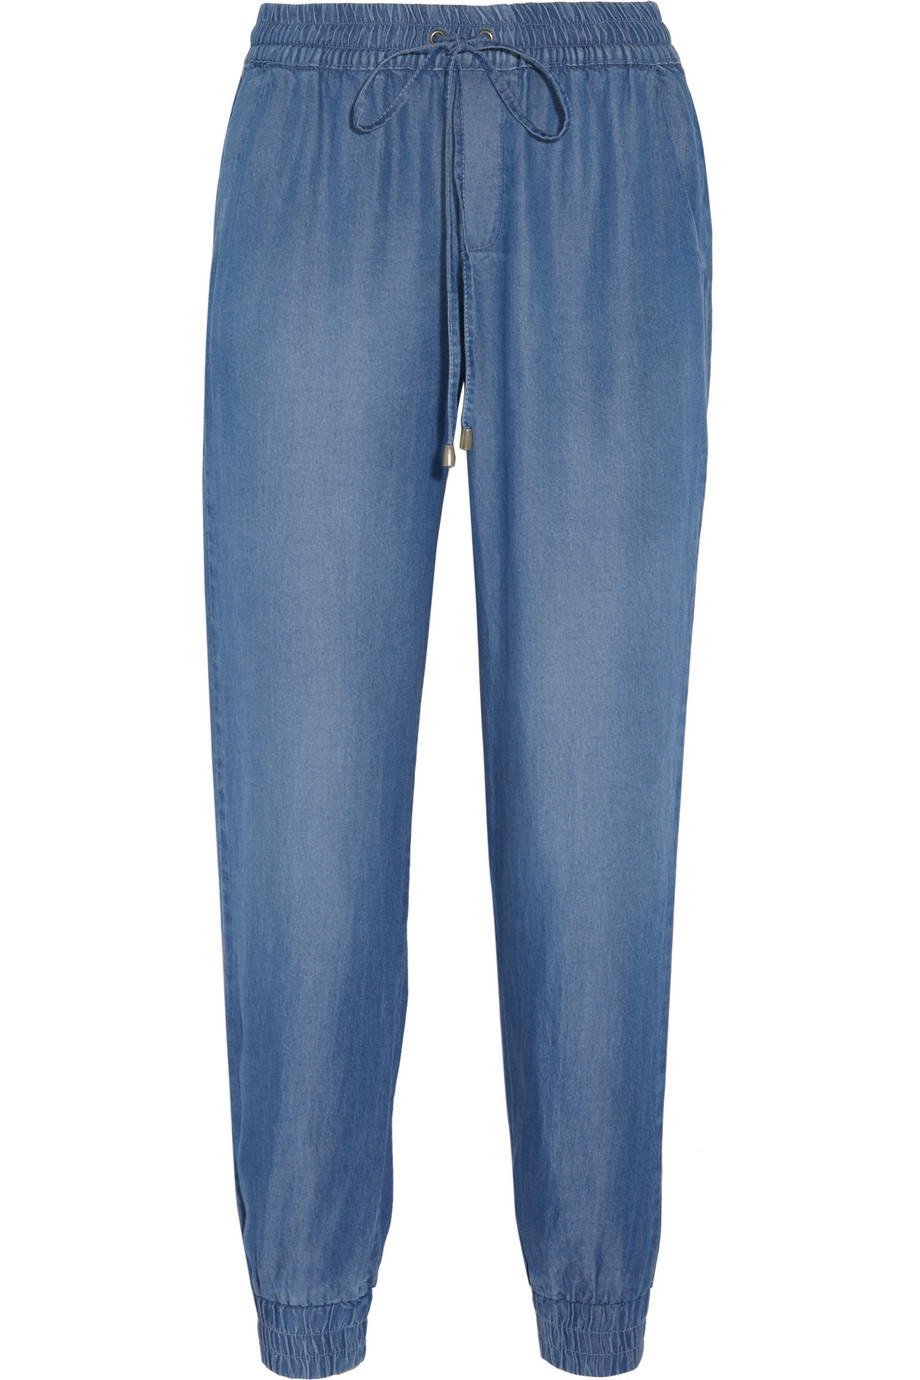 Lyst splendid indigo dye chambray track pants in blue for Chambray jeans